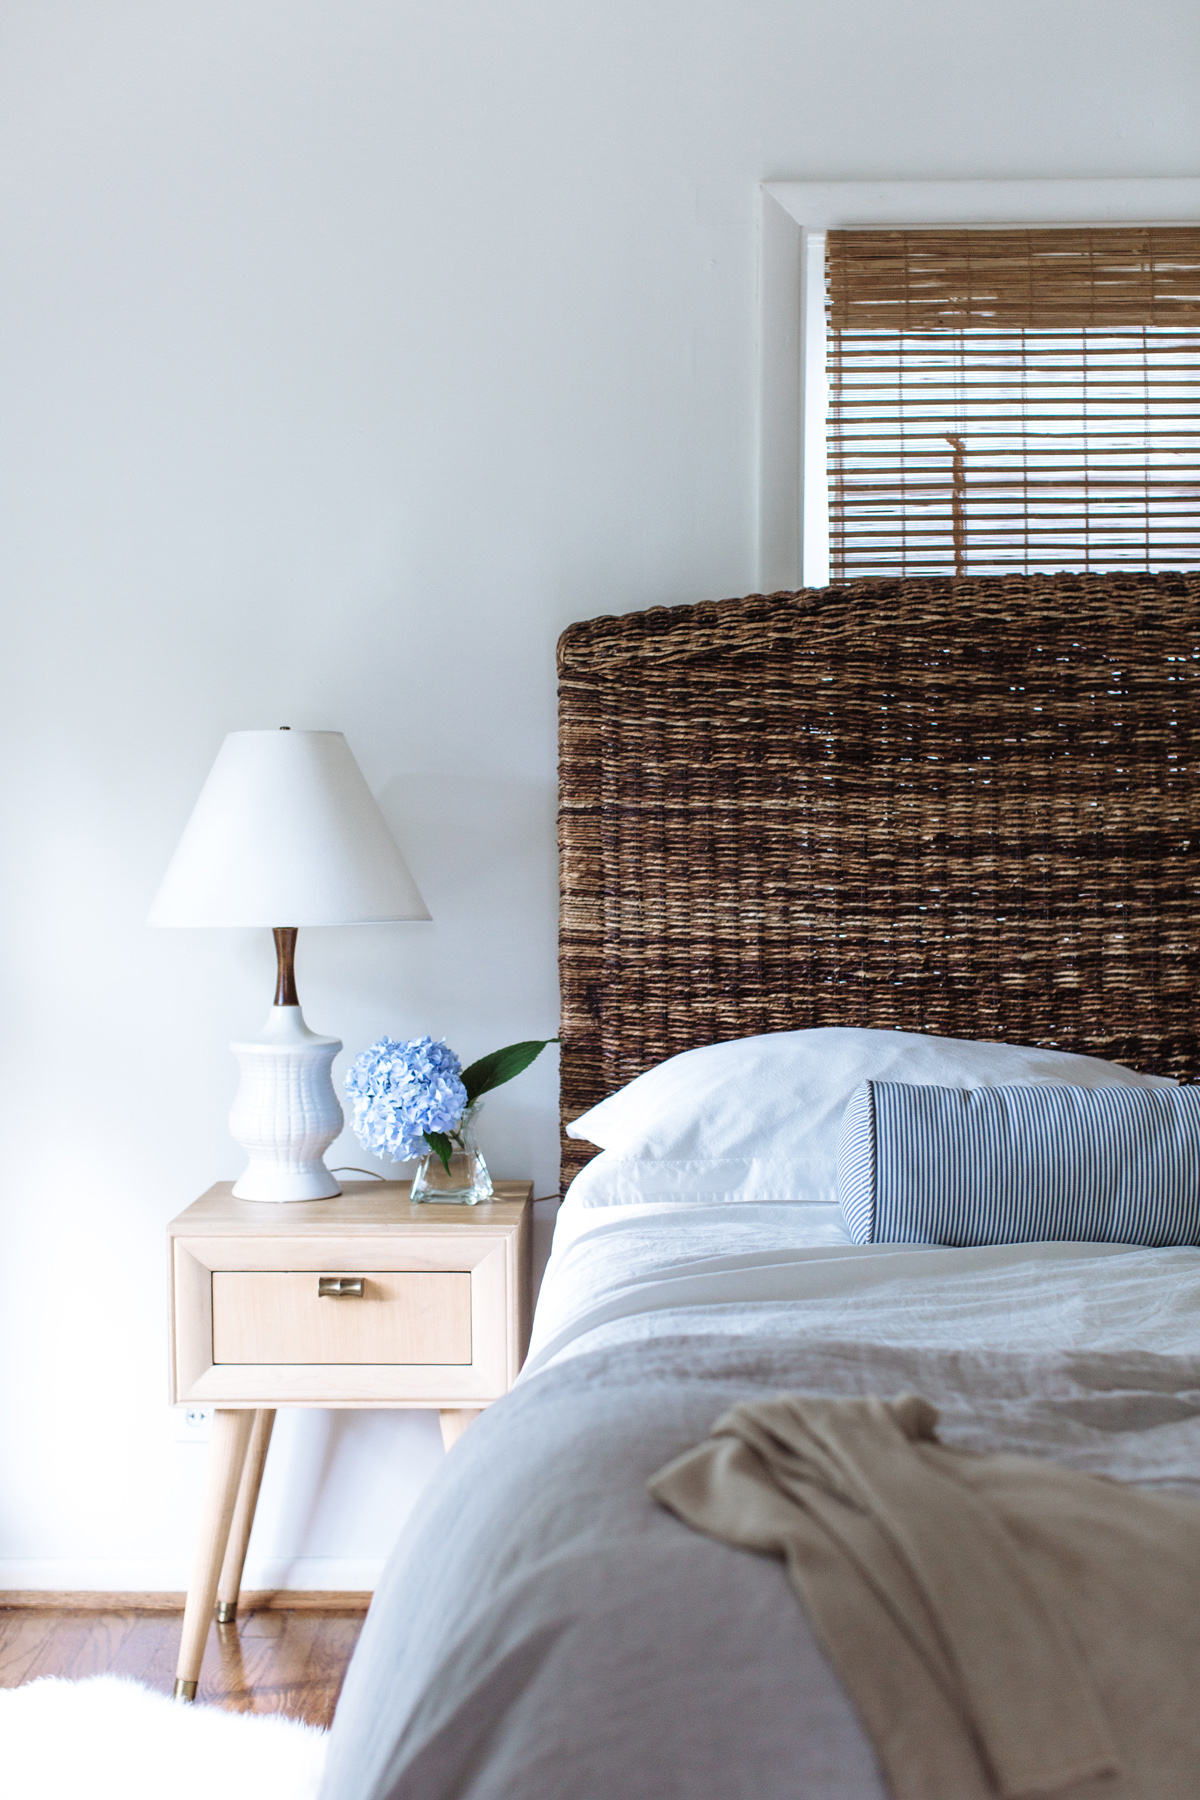 THE-PLACE-HOME-our-home-master-bedroom-2.jpg